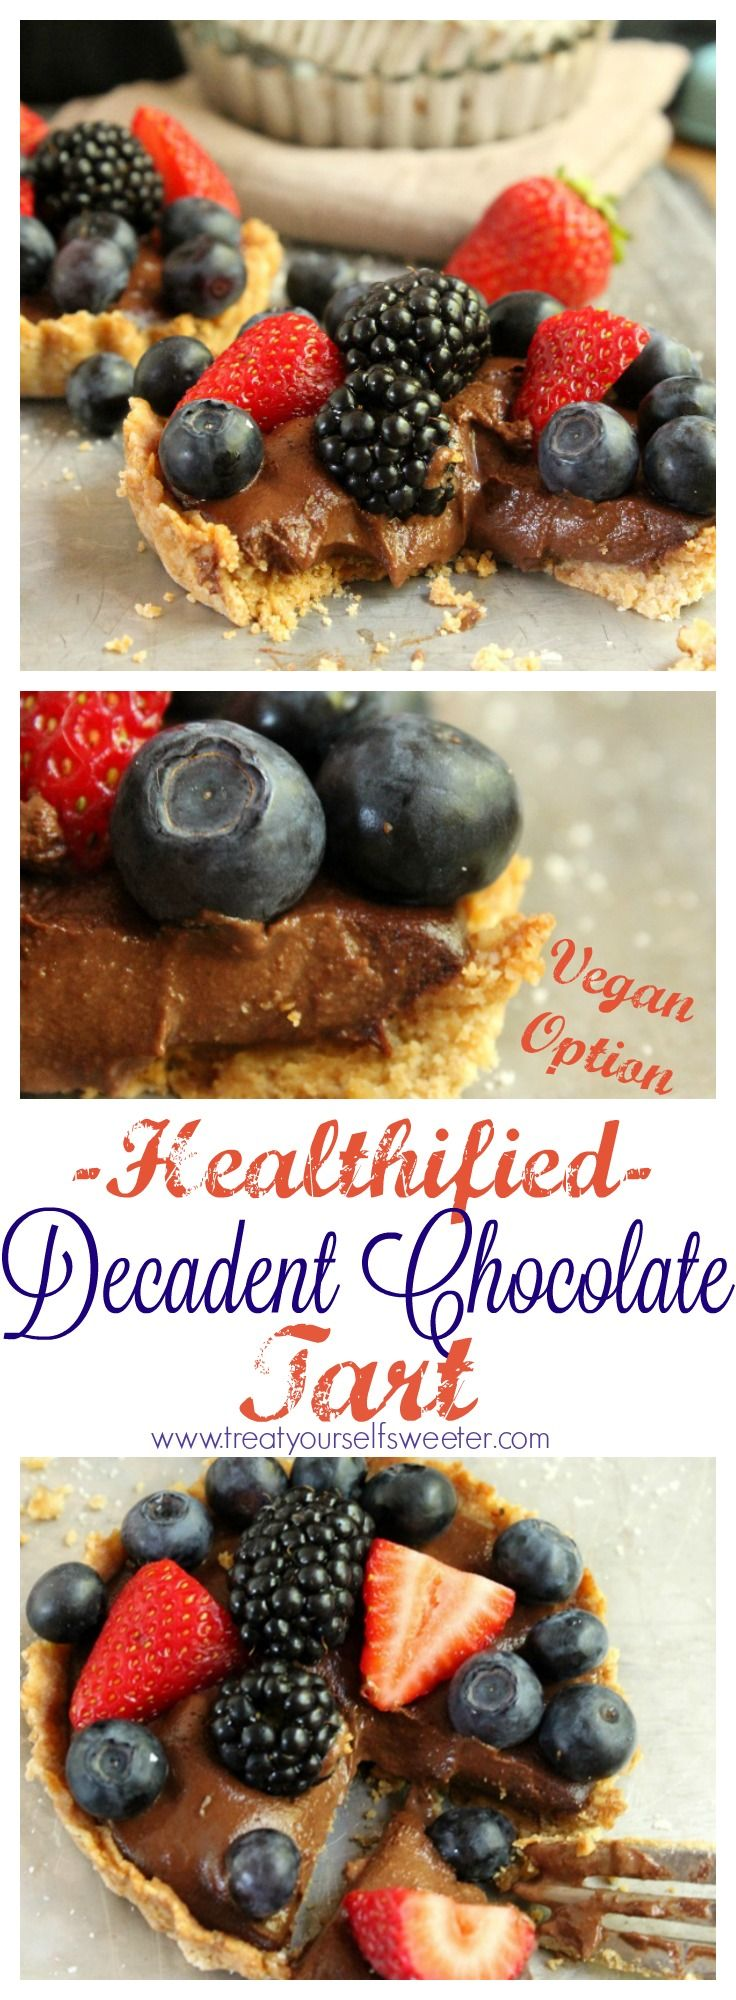 Decadent Healthified Chocolate Tart; Crunchy, nutty base, followed by a thin layer of peanut butter and finished with a smooth, chocolate filling. Topped with berries, this is one special dessert!